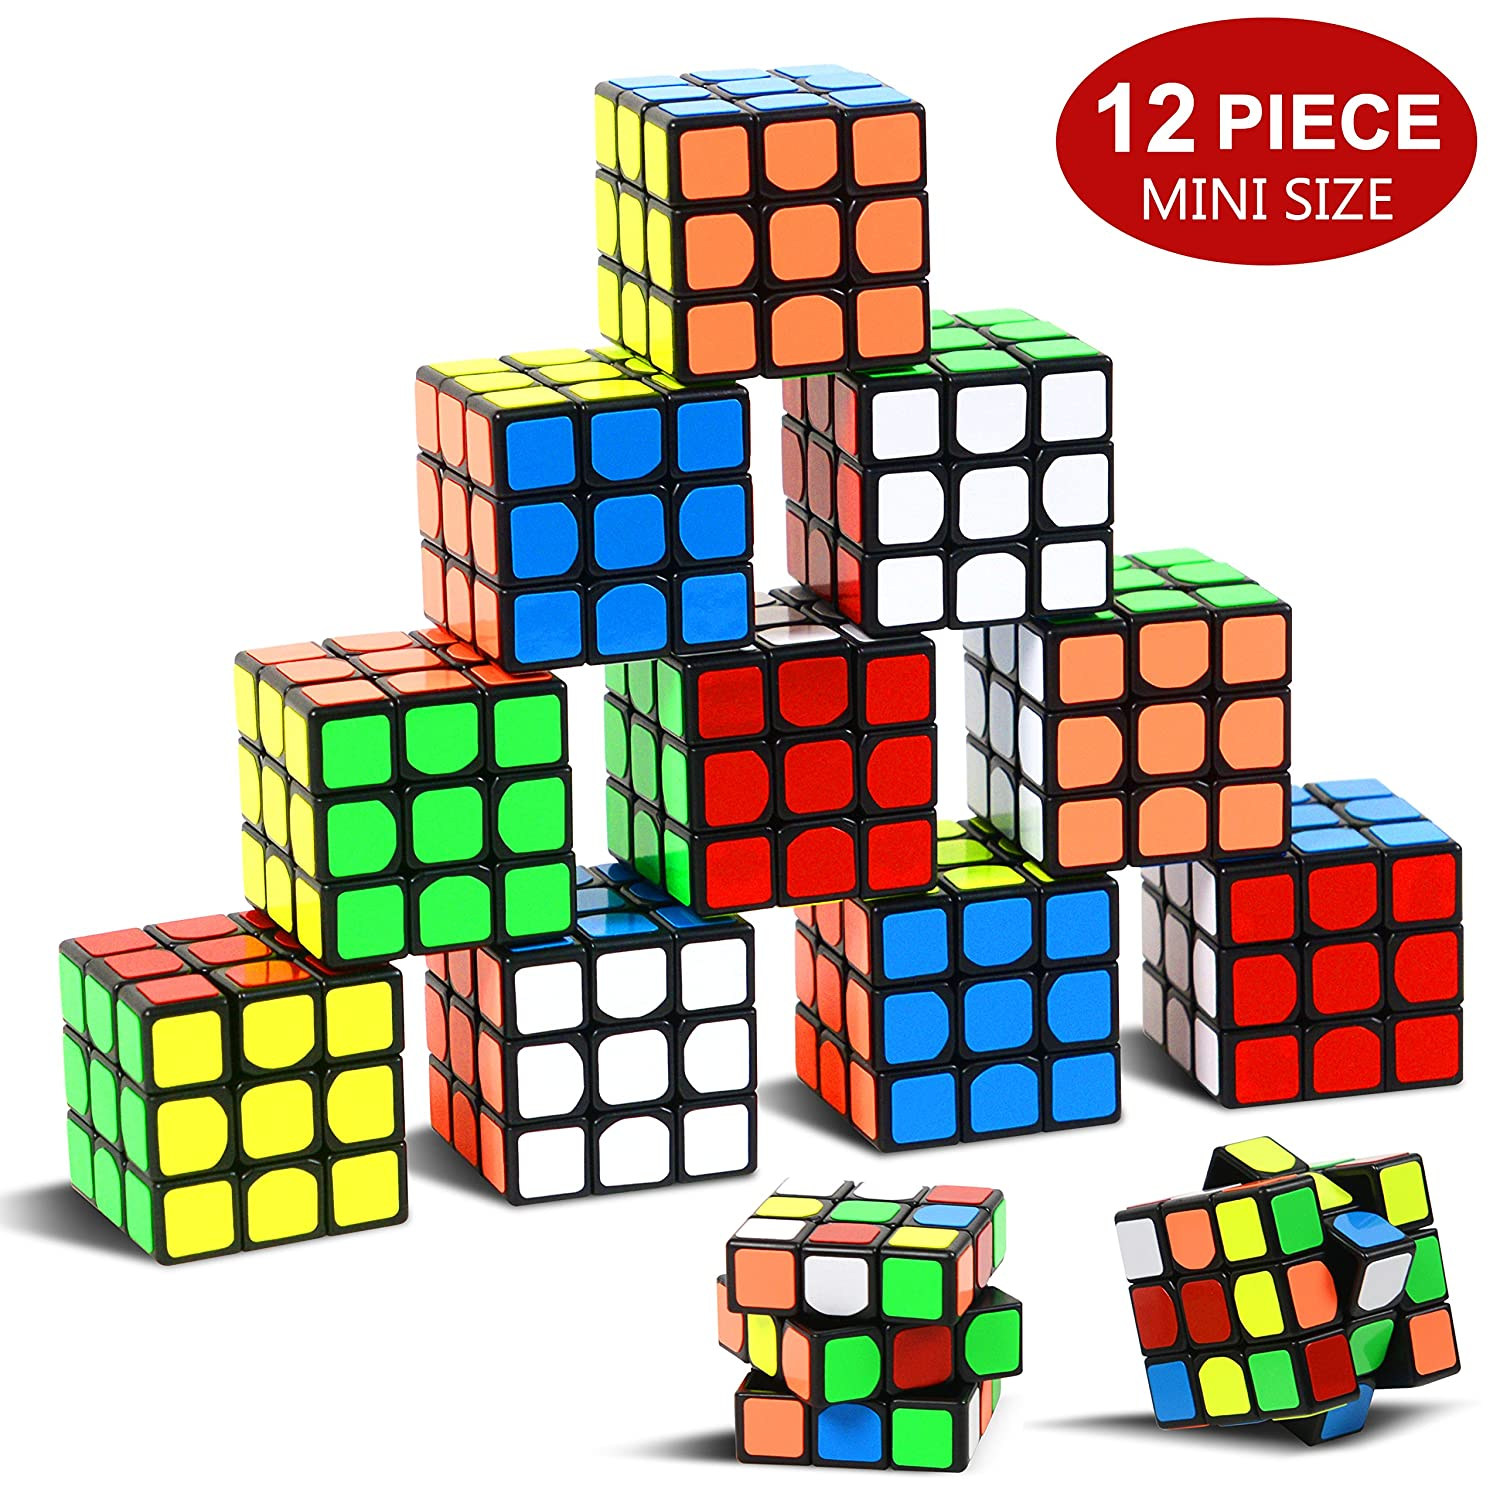 大切な Party Puzzle Toy,12 Pack Mini Colours,Party Cubes 3cm Set Party with Favours Cube Puzzle,Original Colour 3cm Puzzle Magic Cube Eco-friendly ABS Material with Vivid Colours,Party Puzzle Game for Boys Girls Kids Toddlers B076Y3VMSR, 大津郡:16c22a59 --- clubavenue.eu